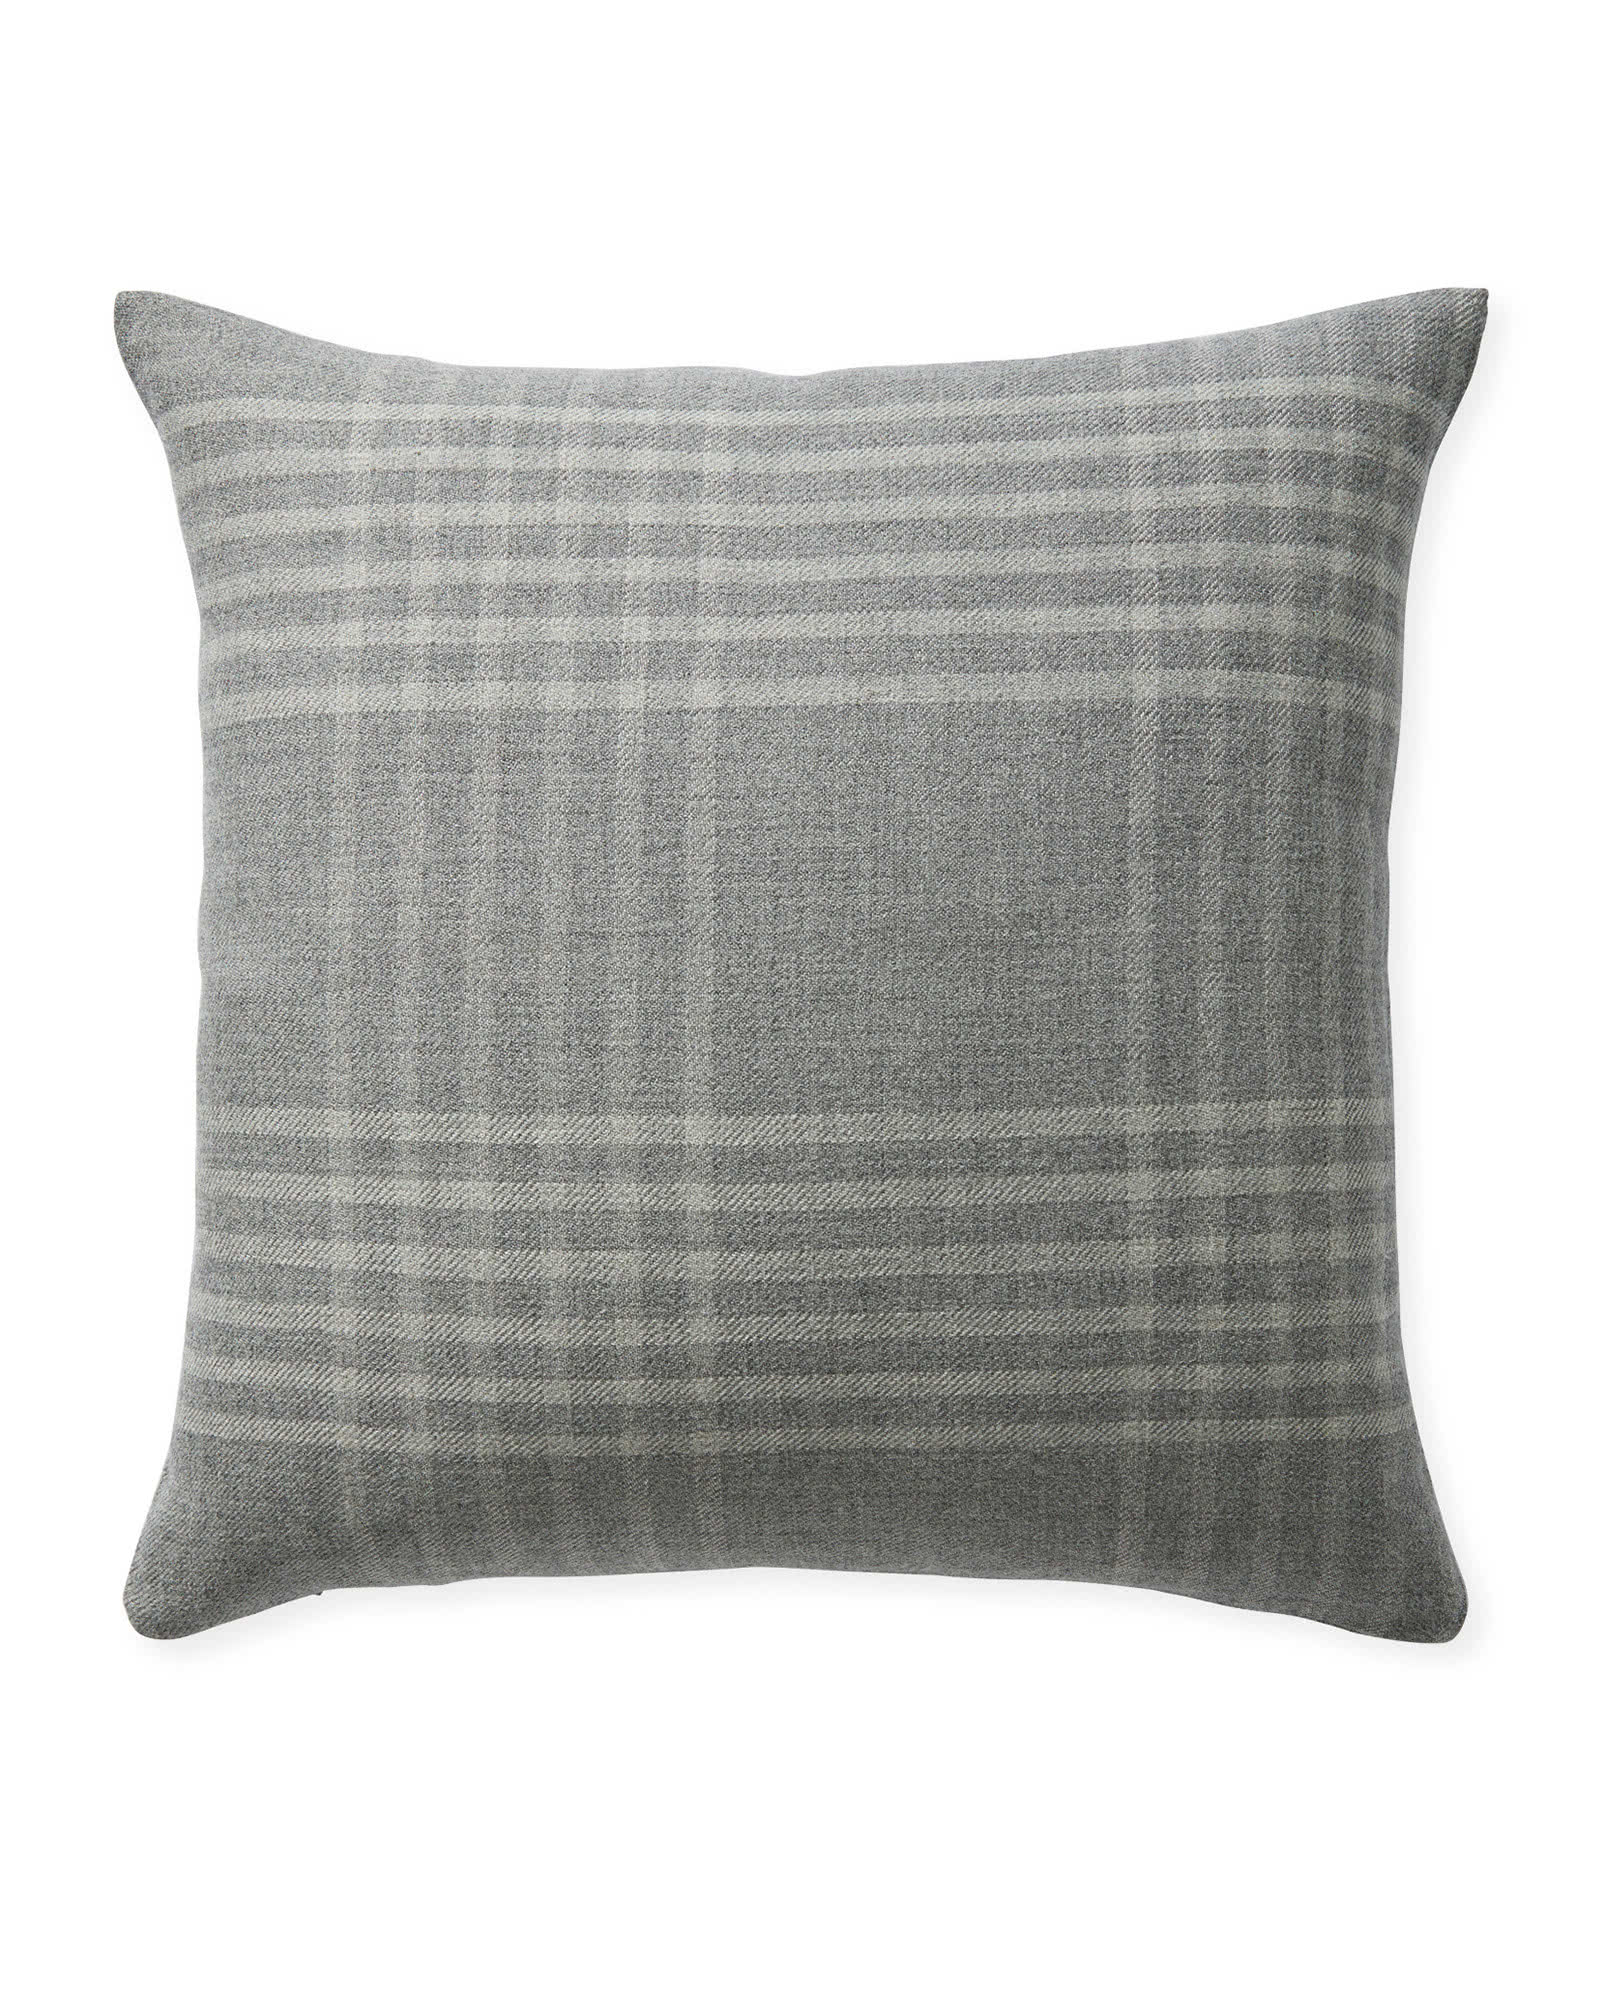 Blakely Plaid Pillow Cover, Smoke